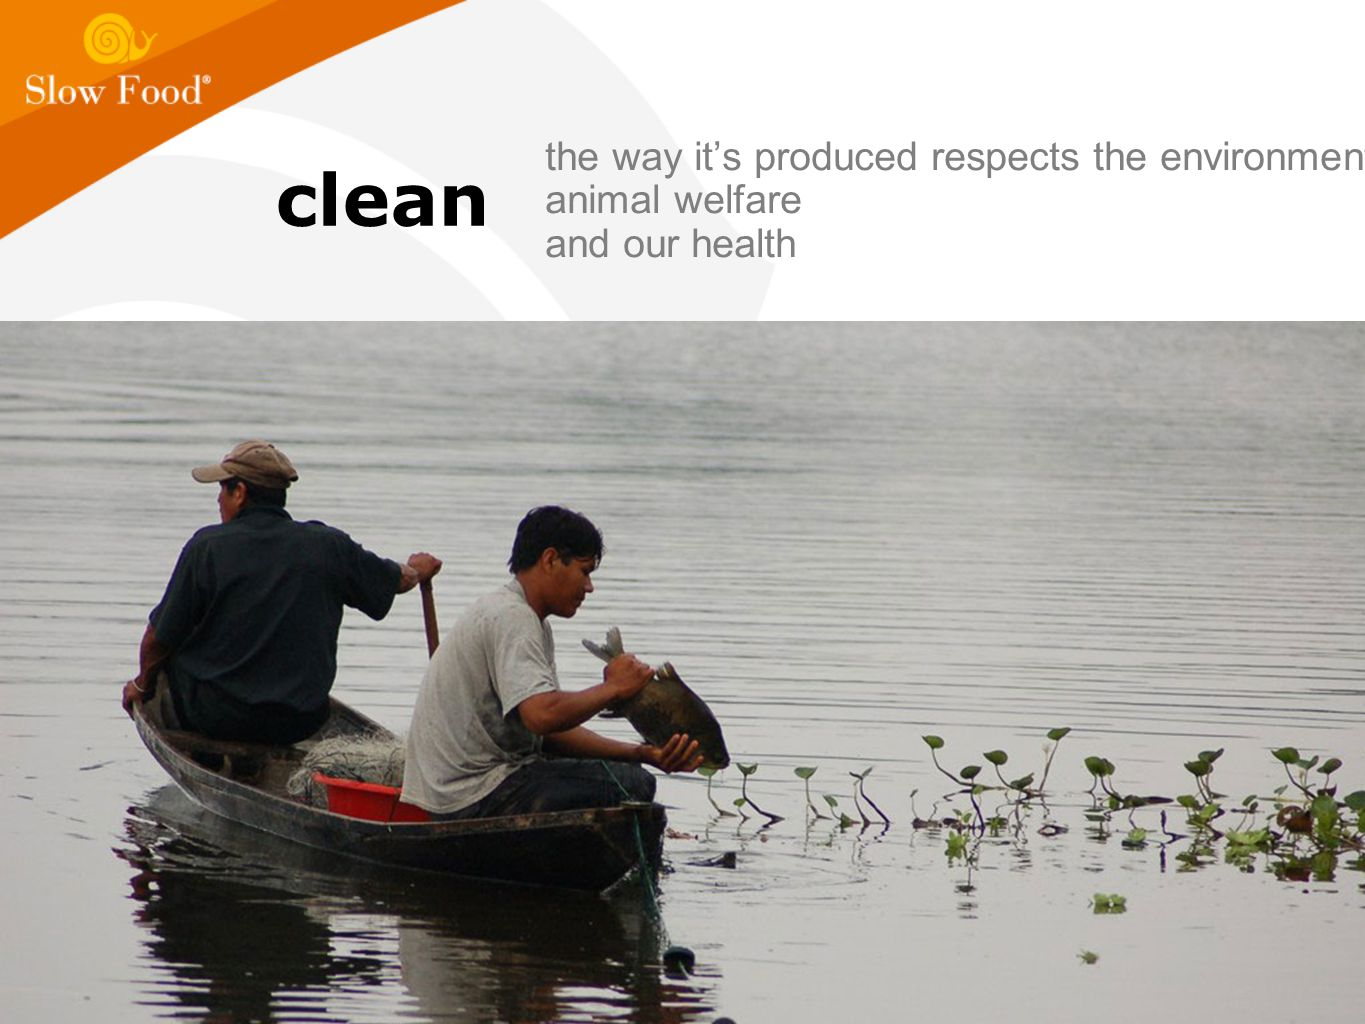 clean the way it's produced respects the environment, animal welfare and our health